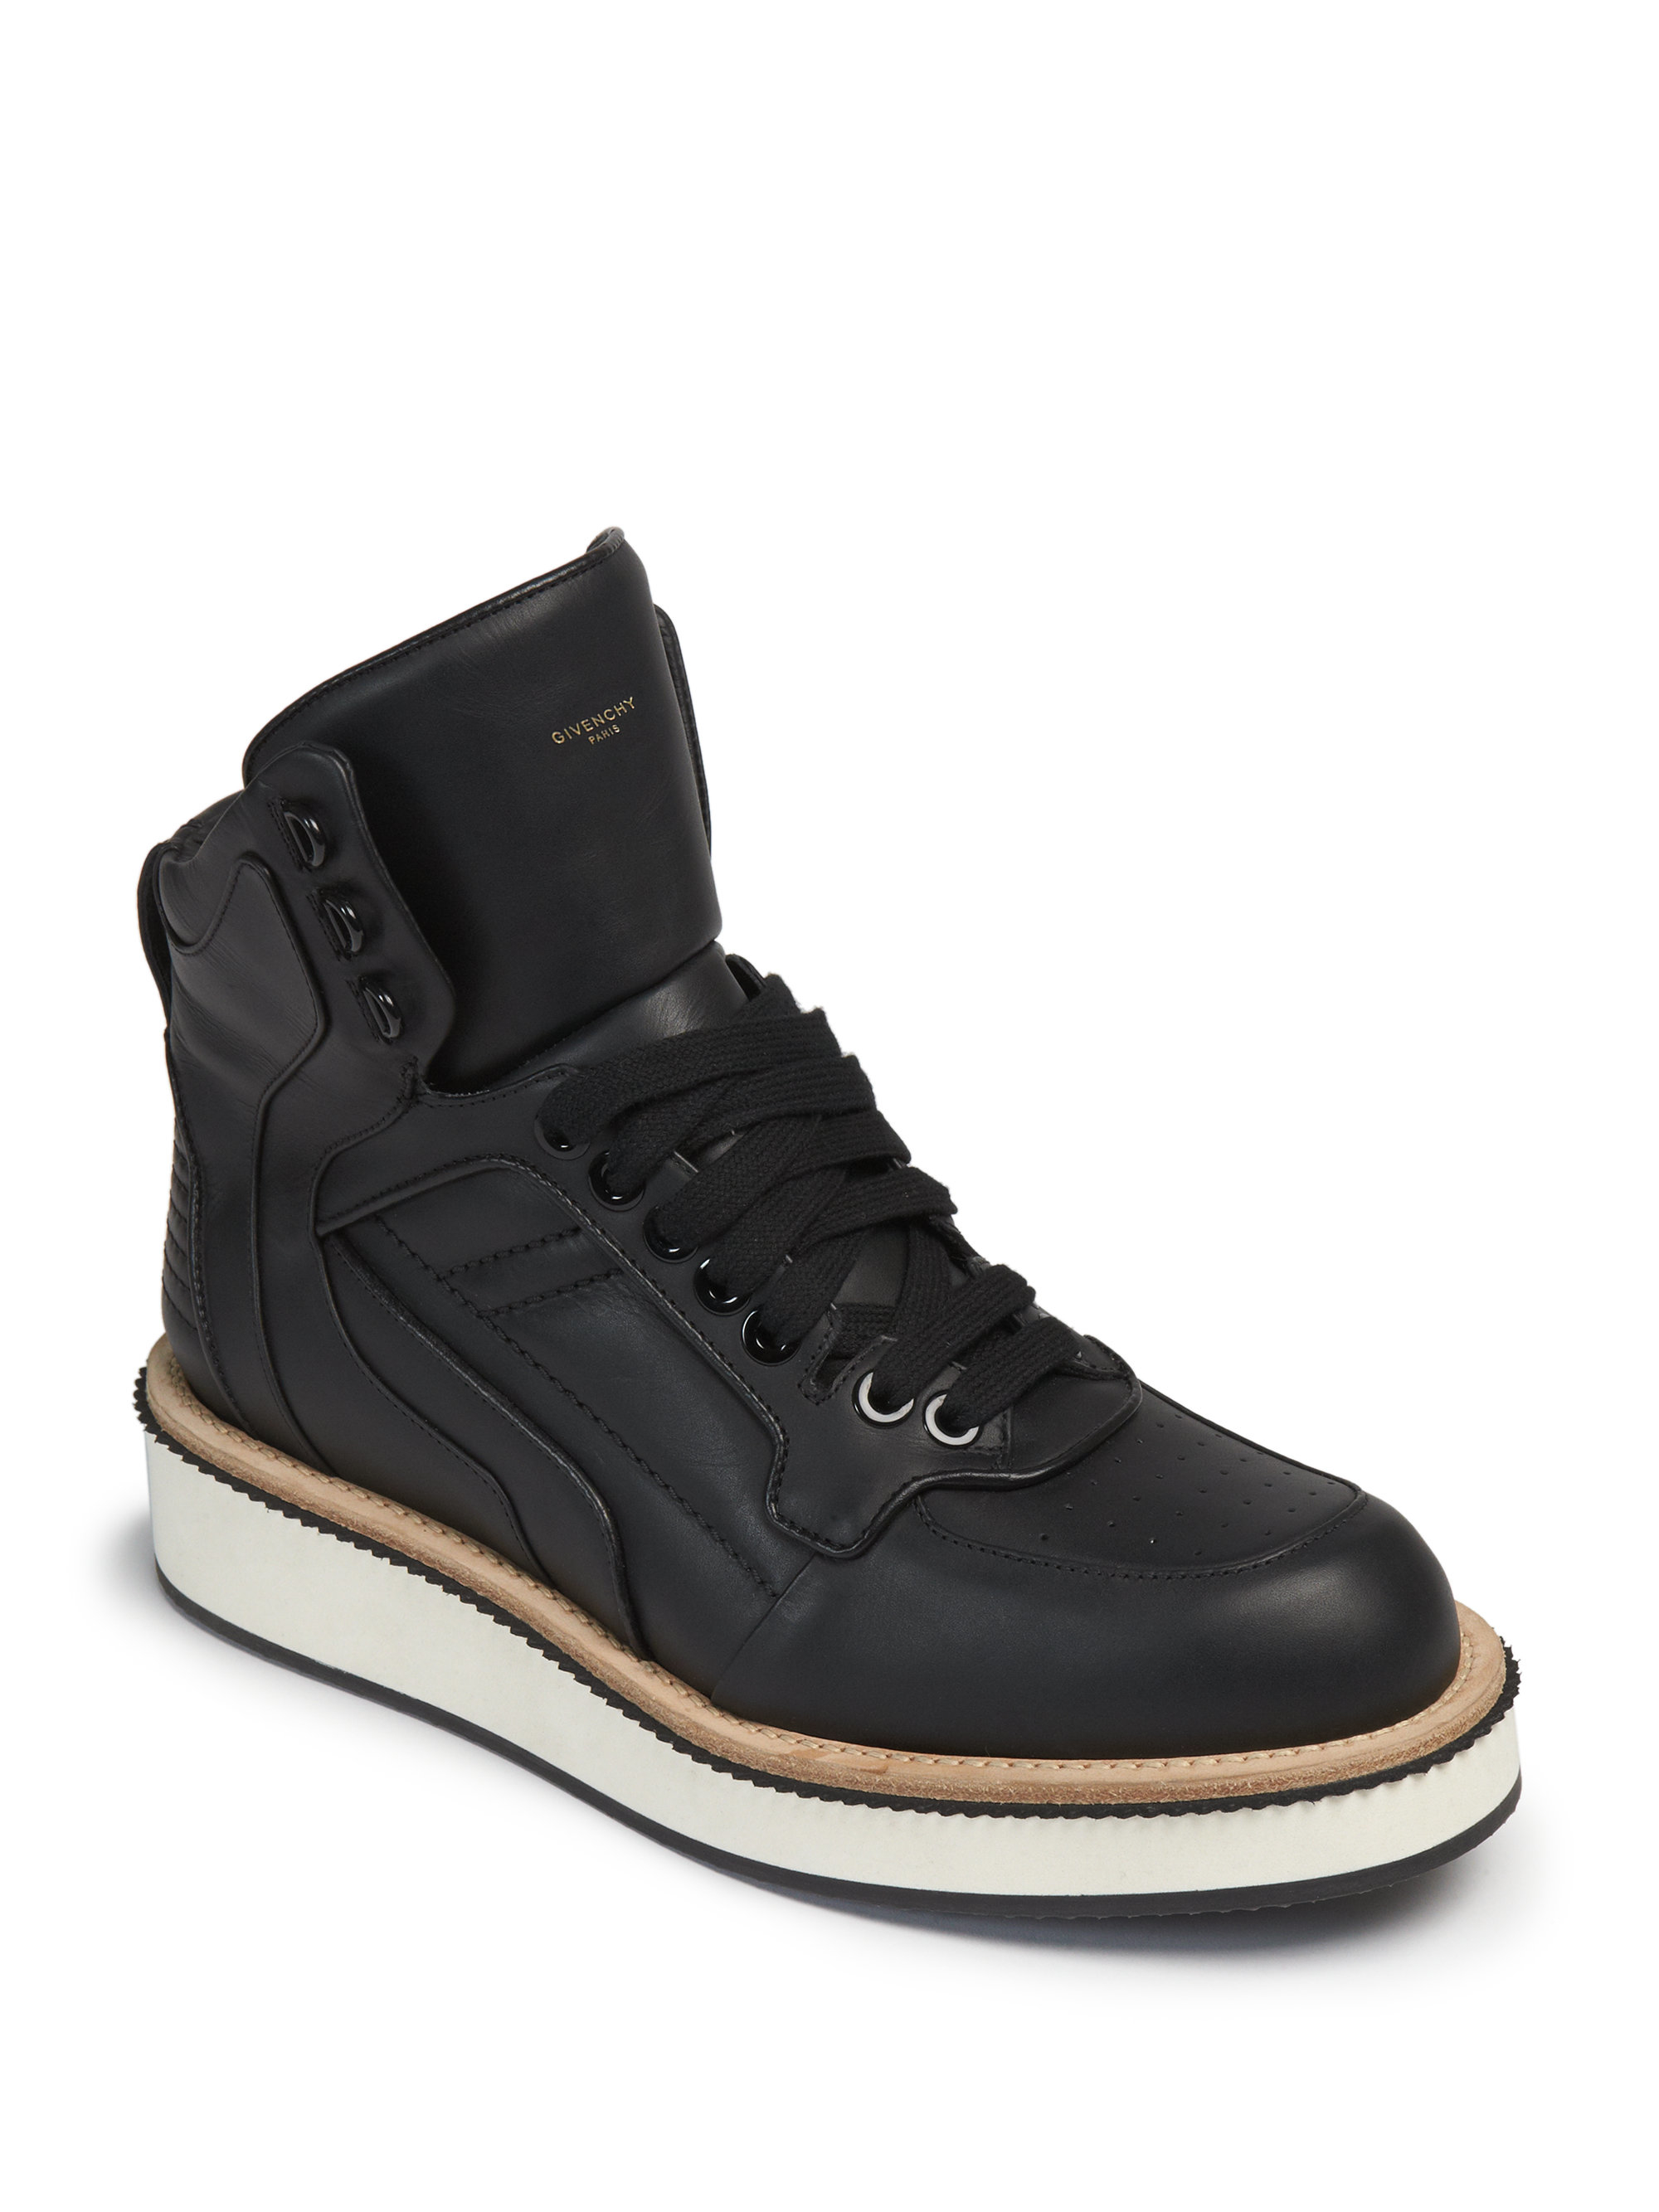 Givenchy Tyson Rottweiler Leather High Top Sneakers In